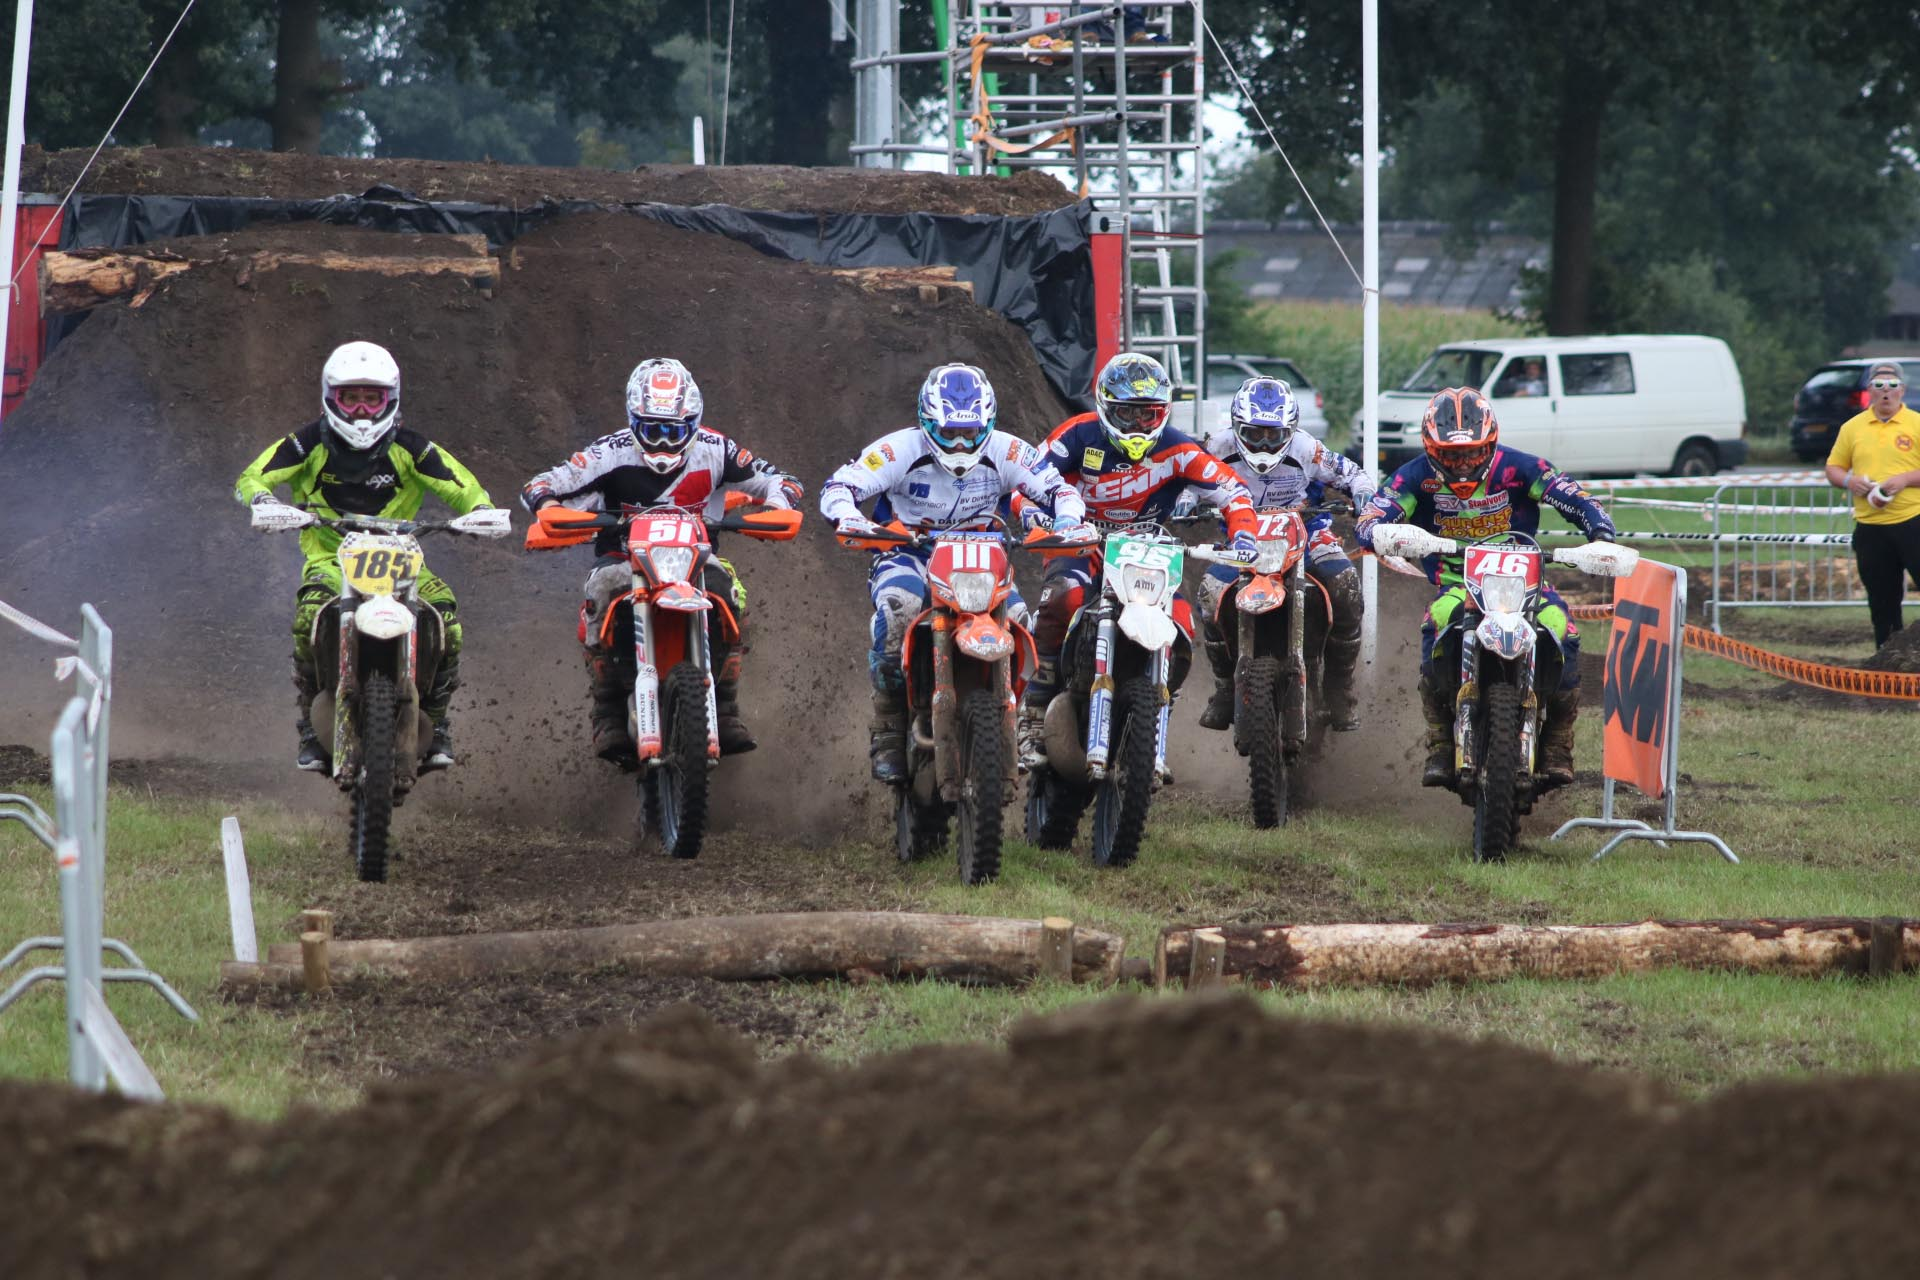 2016 08 endurocross nl start